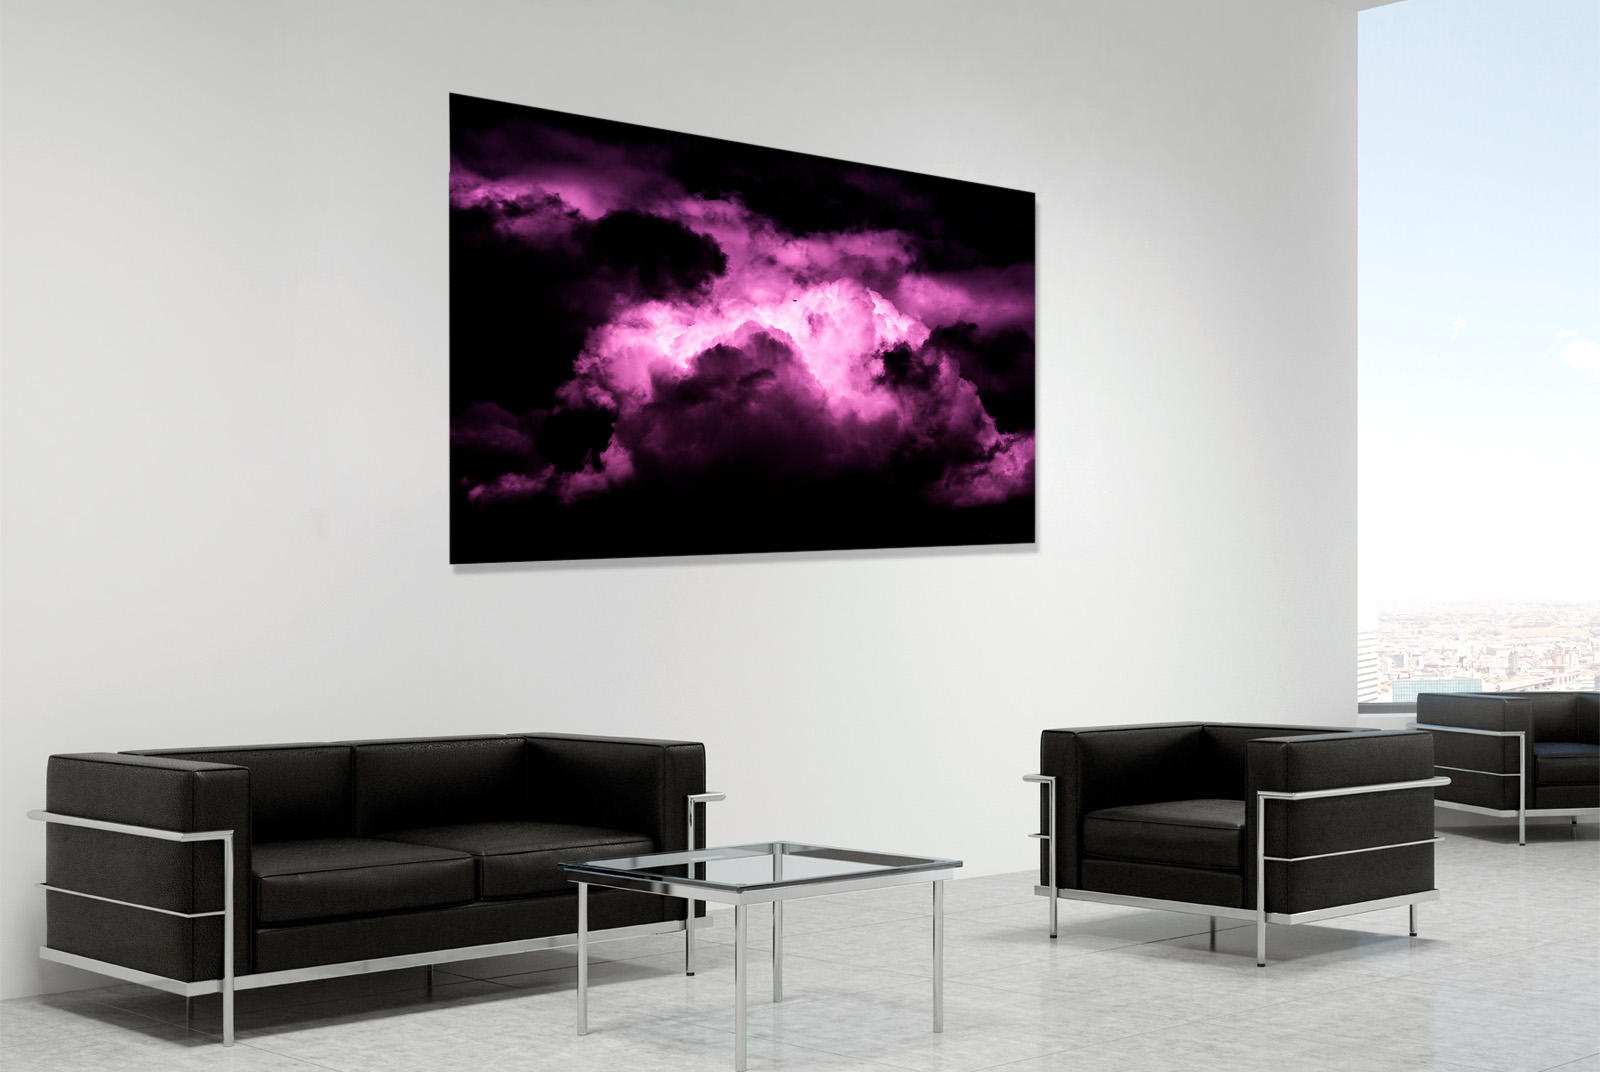 Silent. Fine art landscape photograph in a room setting - photo reference 5700.